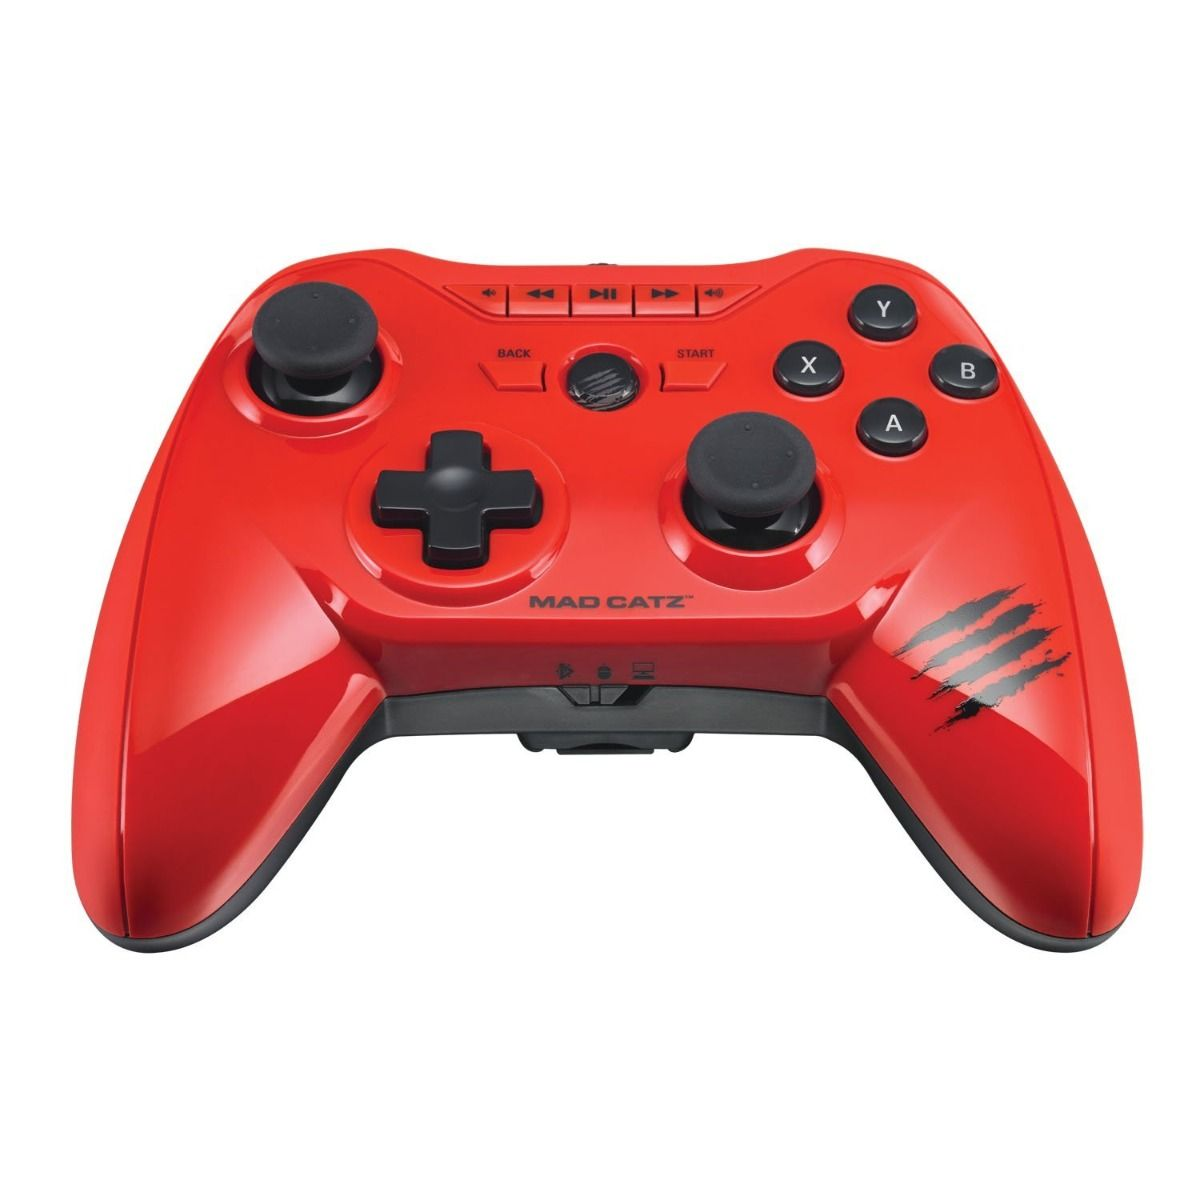 Mad Catz C.T.R.L.R Mobile Controller - Red (Android)